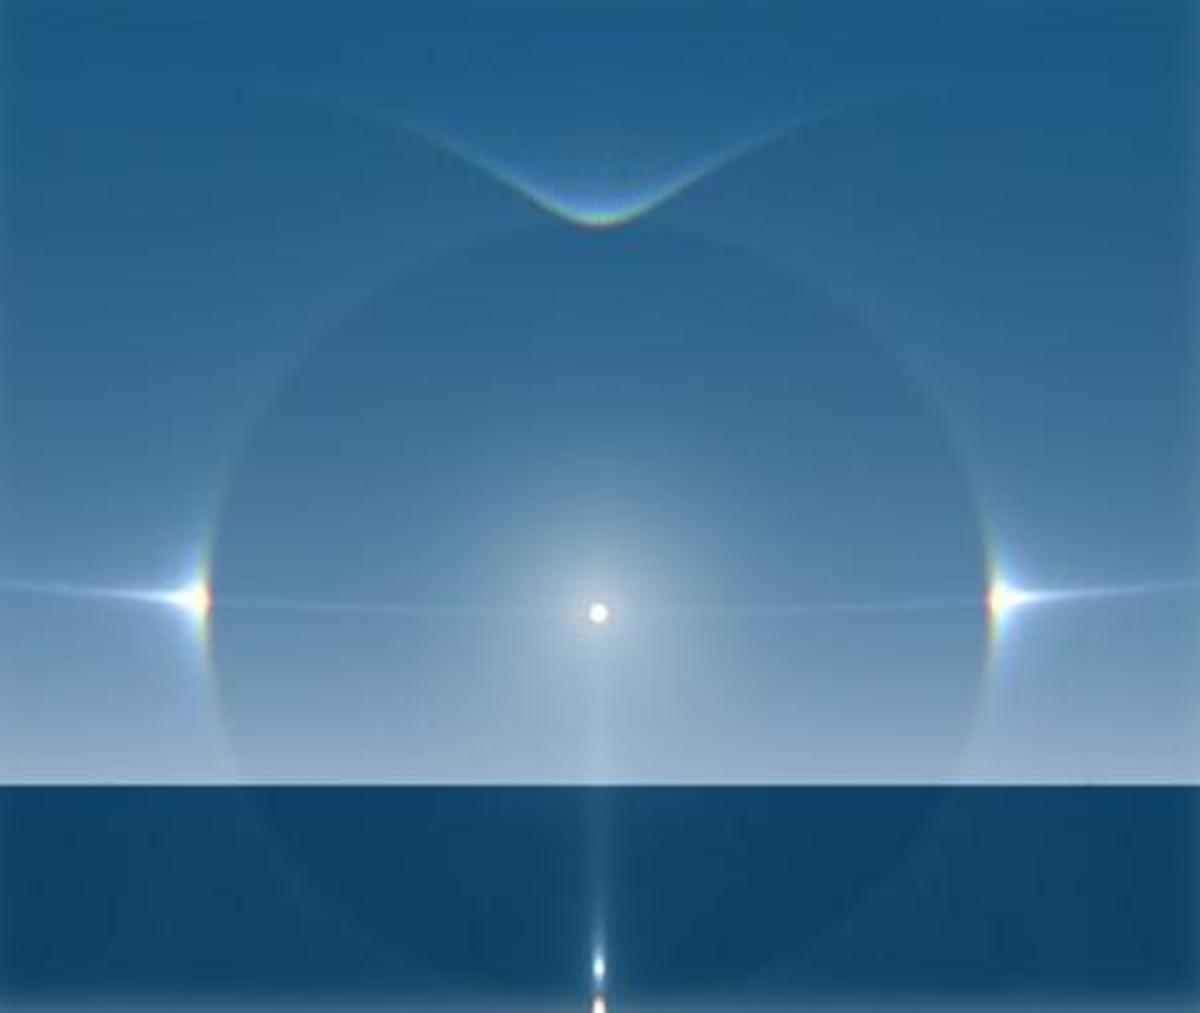 Halo simulation of Sun with a 22 degrees halo, sundogs, tangent arc and sun pillar